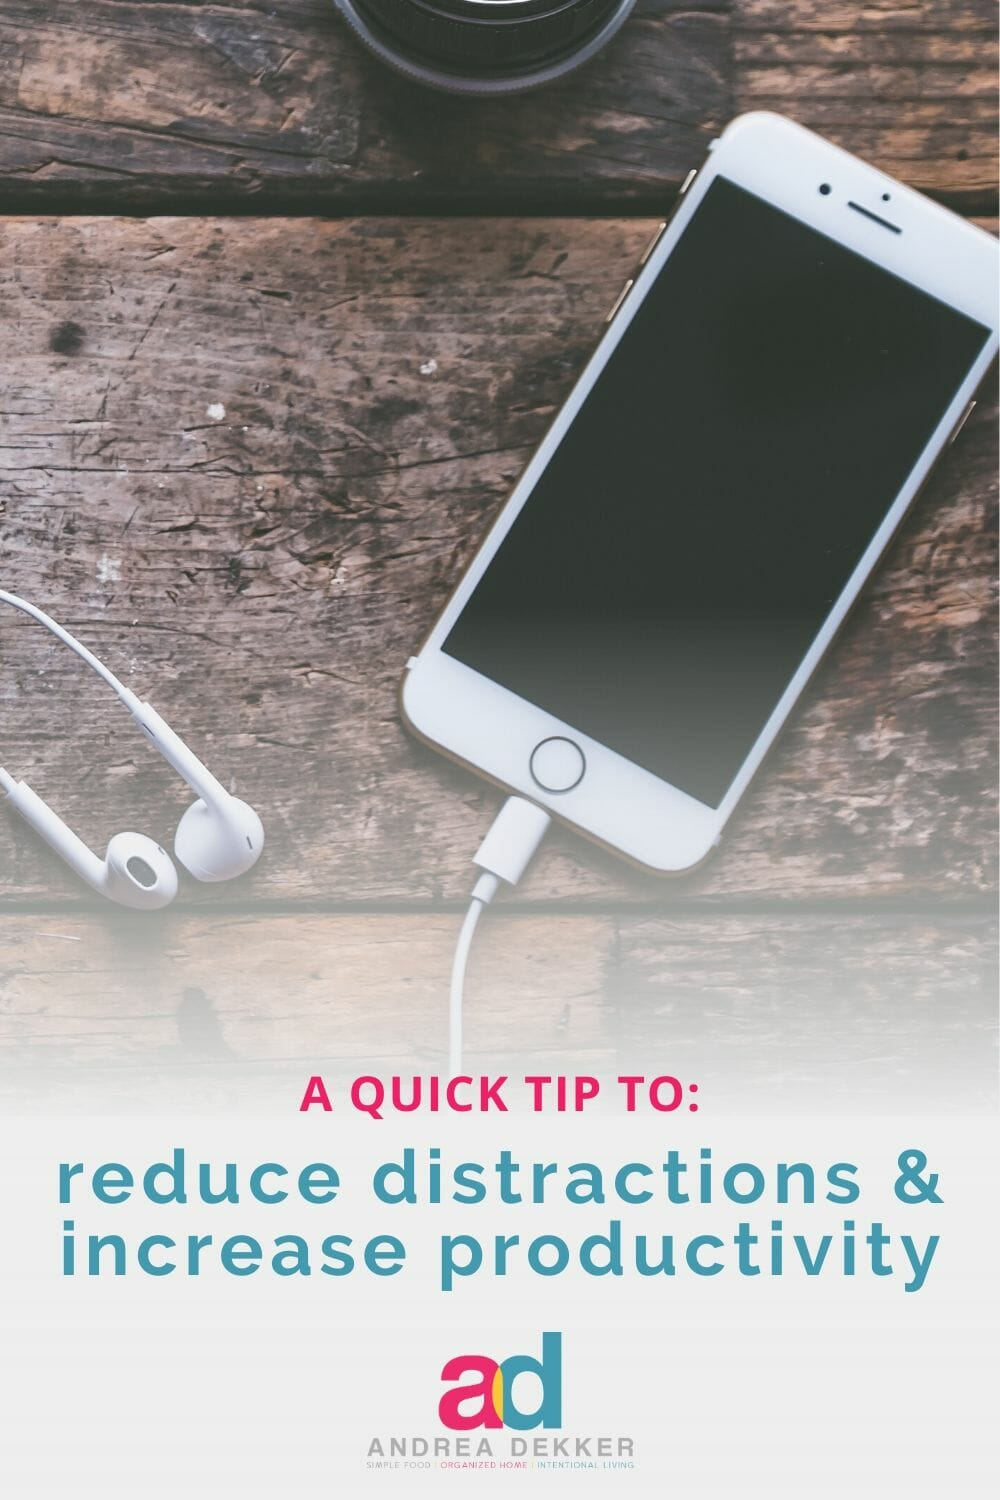 This 1-minute quick tip will instantly boost productivity, reduce distractions, and eliminate wasted time. If you are constantly distracted by your phone, if you're frustrated with the amount of time you waste on your device, or if you're looking for a really quick way to instantly boost your productivity each day, this quick-tip is for YOU! via @andreadekker